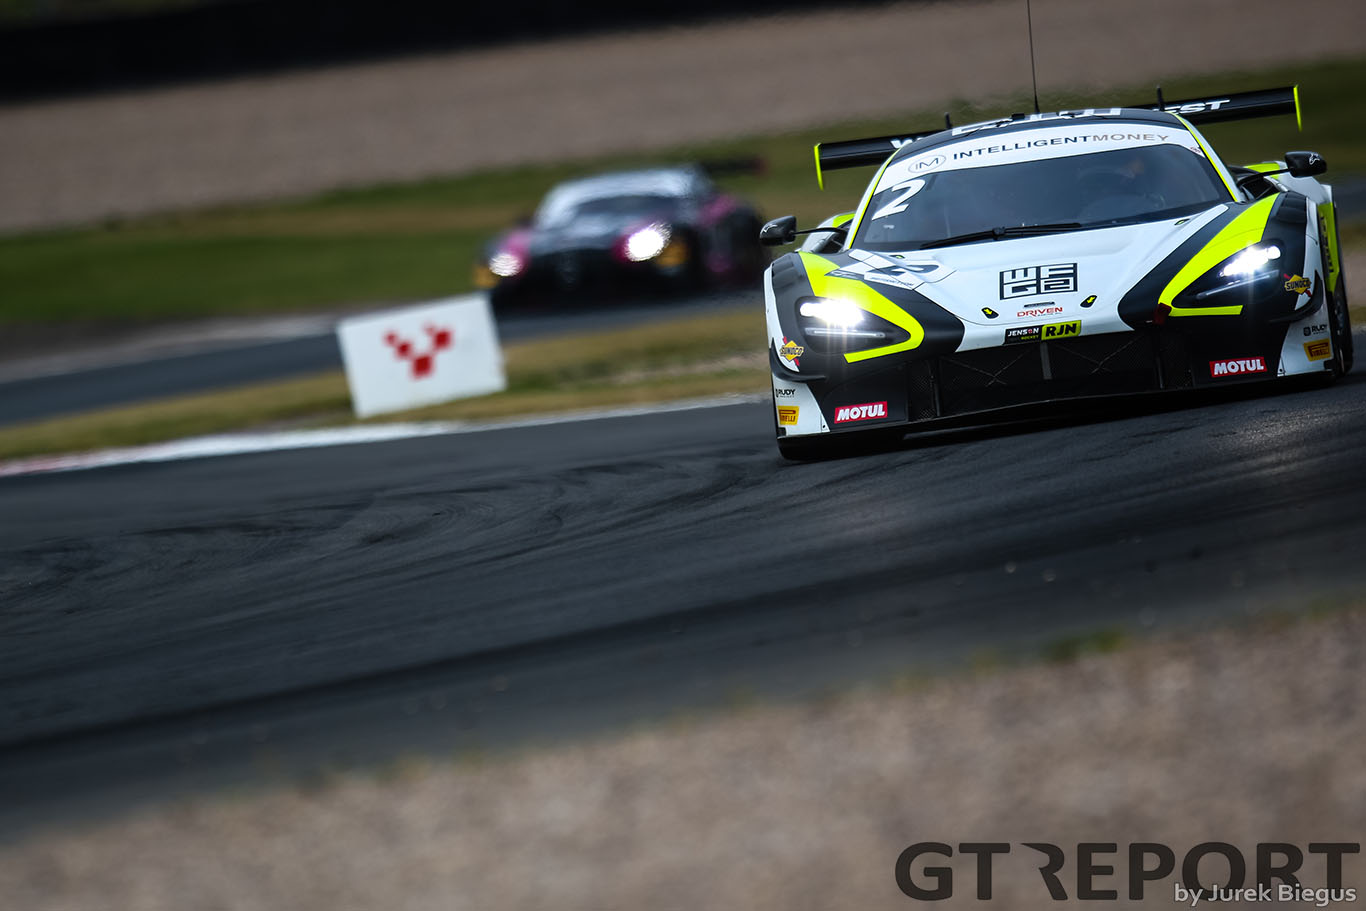 British GT Donington Park: McLaren takes quadruple pole